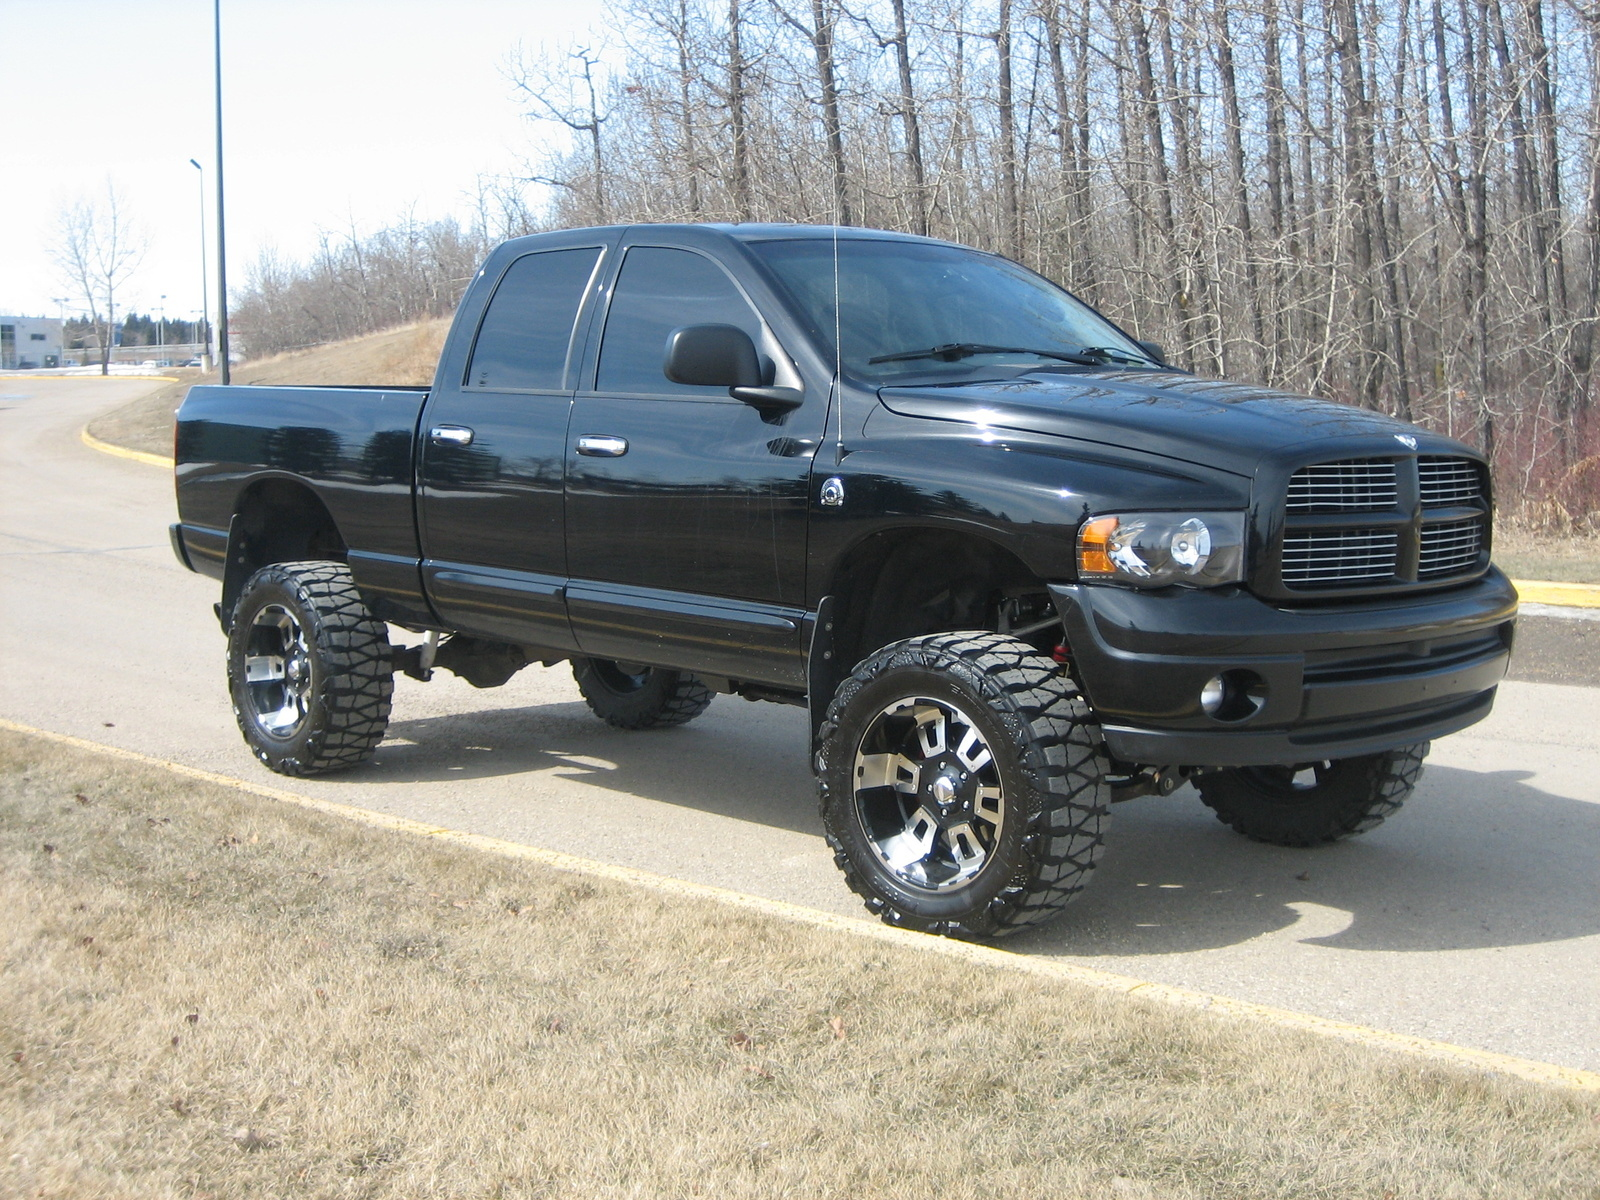 Picture of 2004 dodge ram 1500 laramie quad cab sb 4wd exterior gallery_worthy